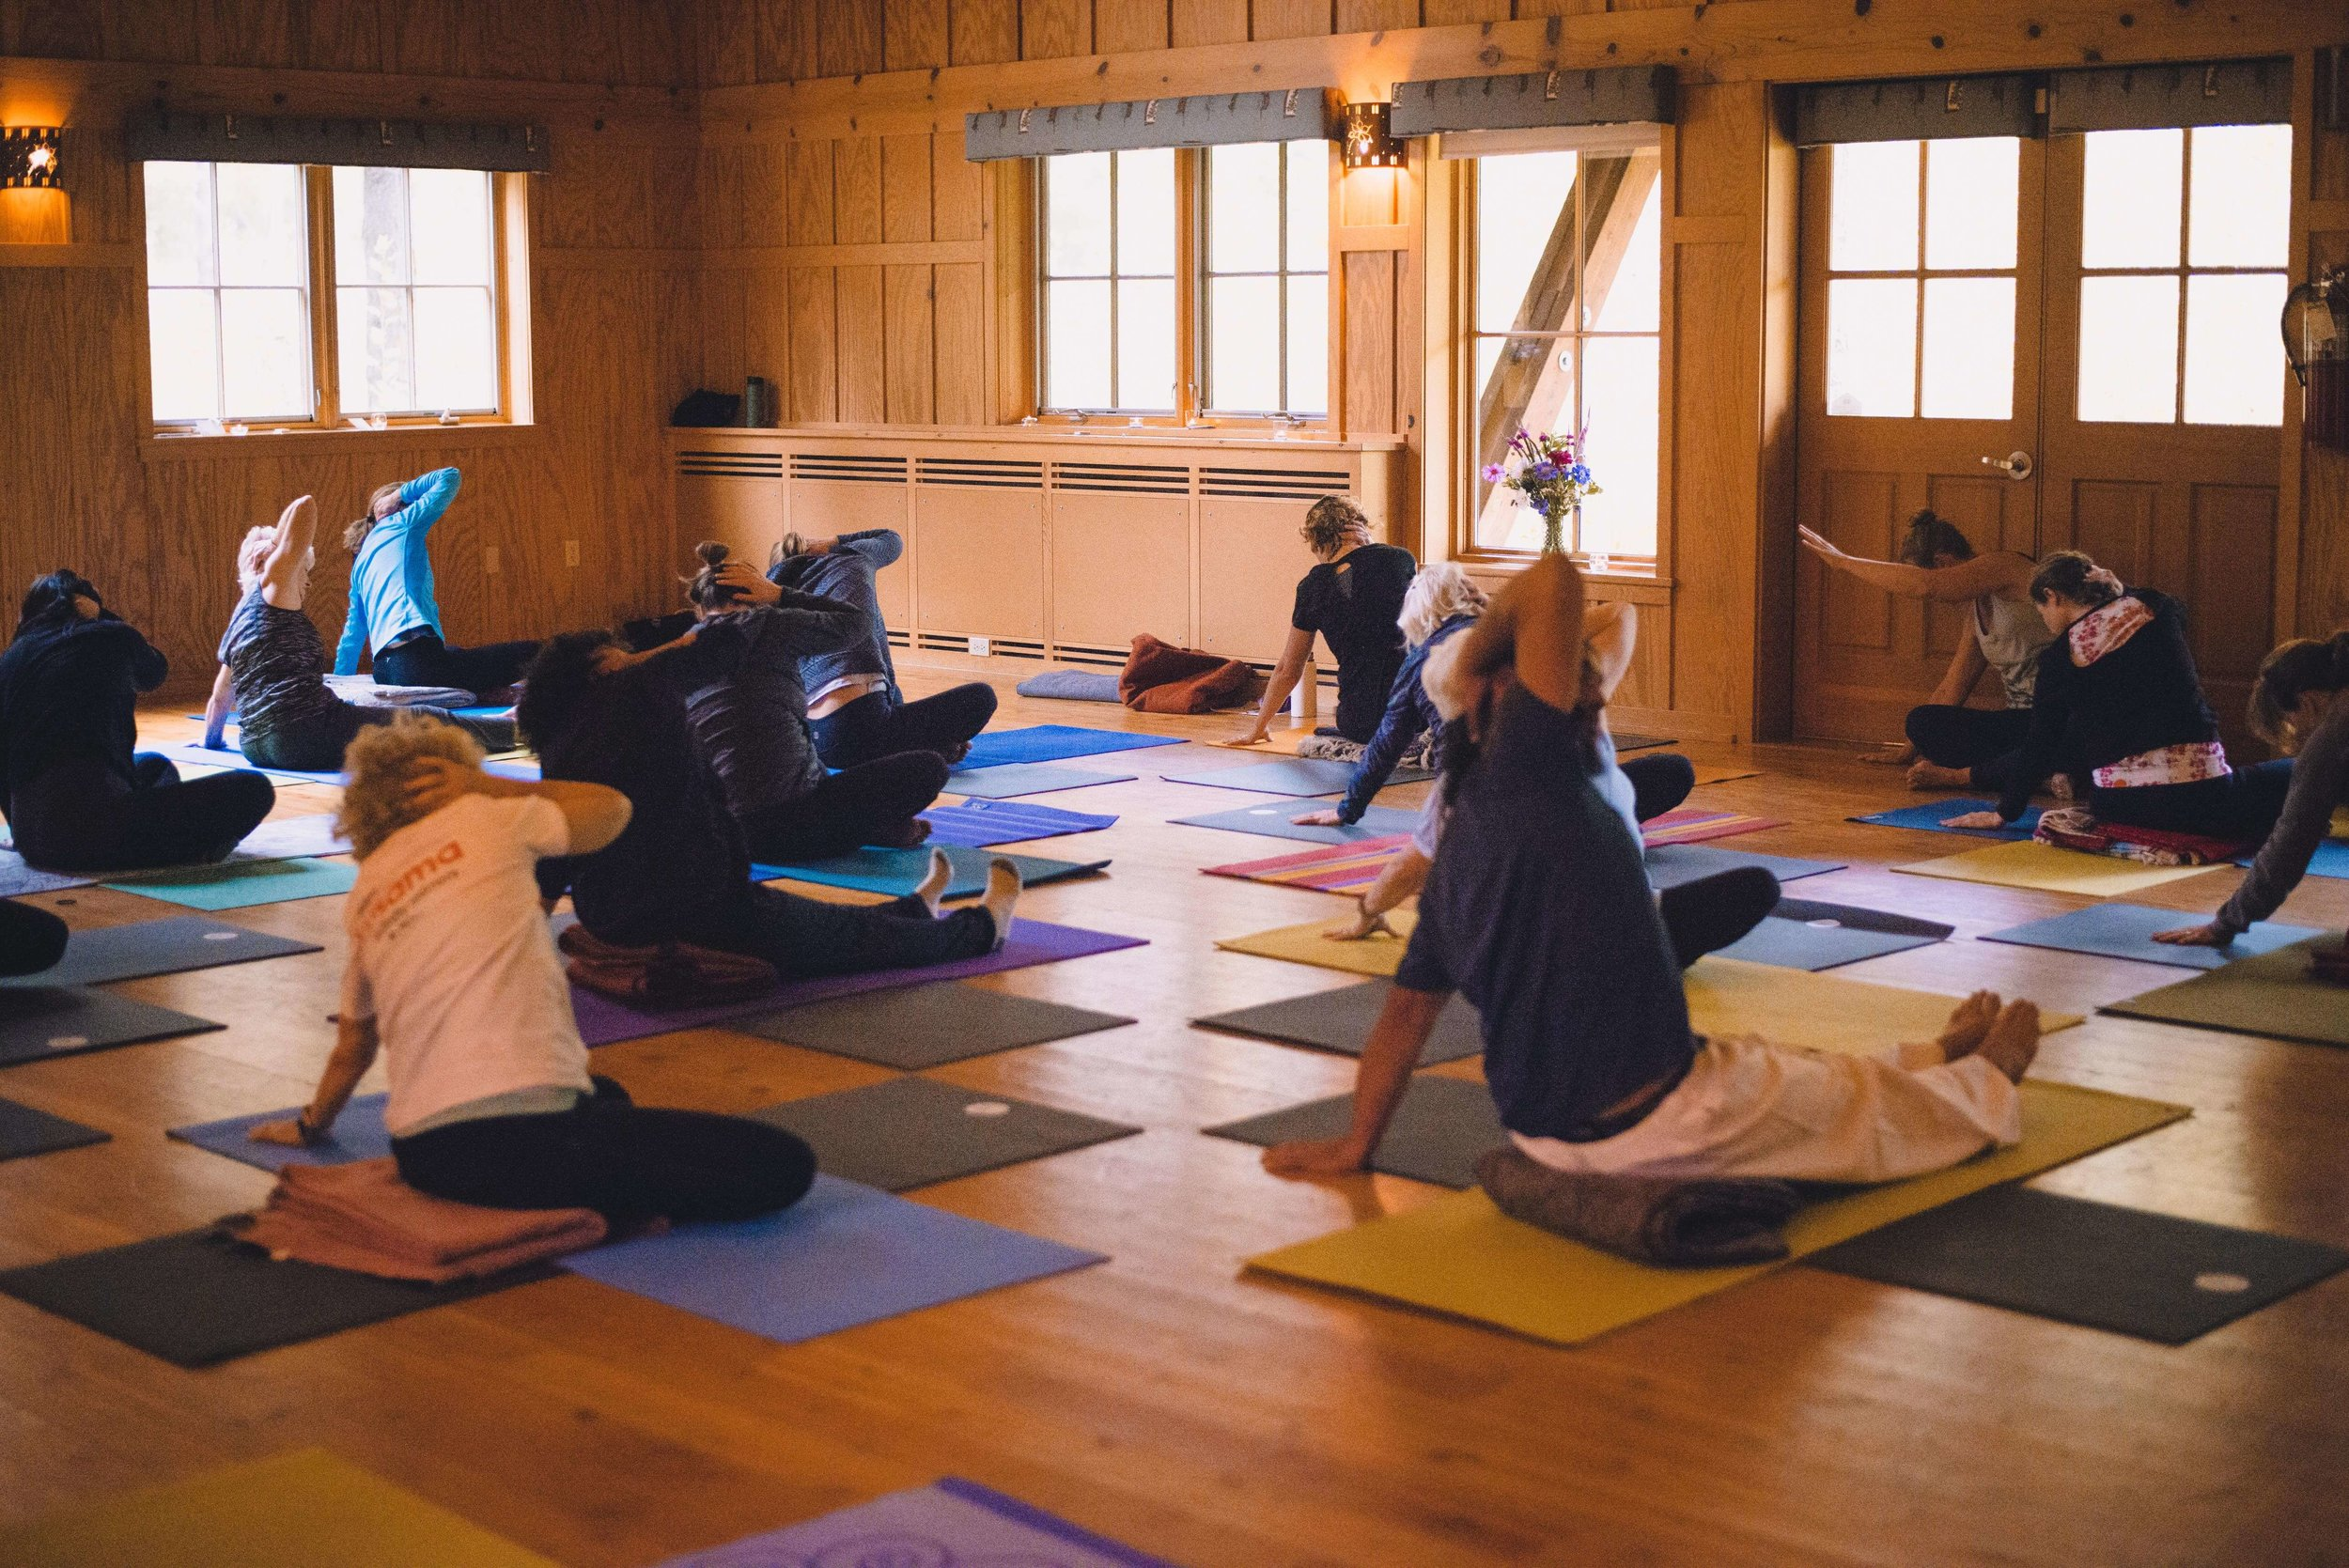 yoga workshops at the Sleeping Lady